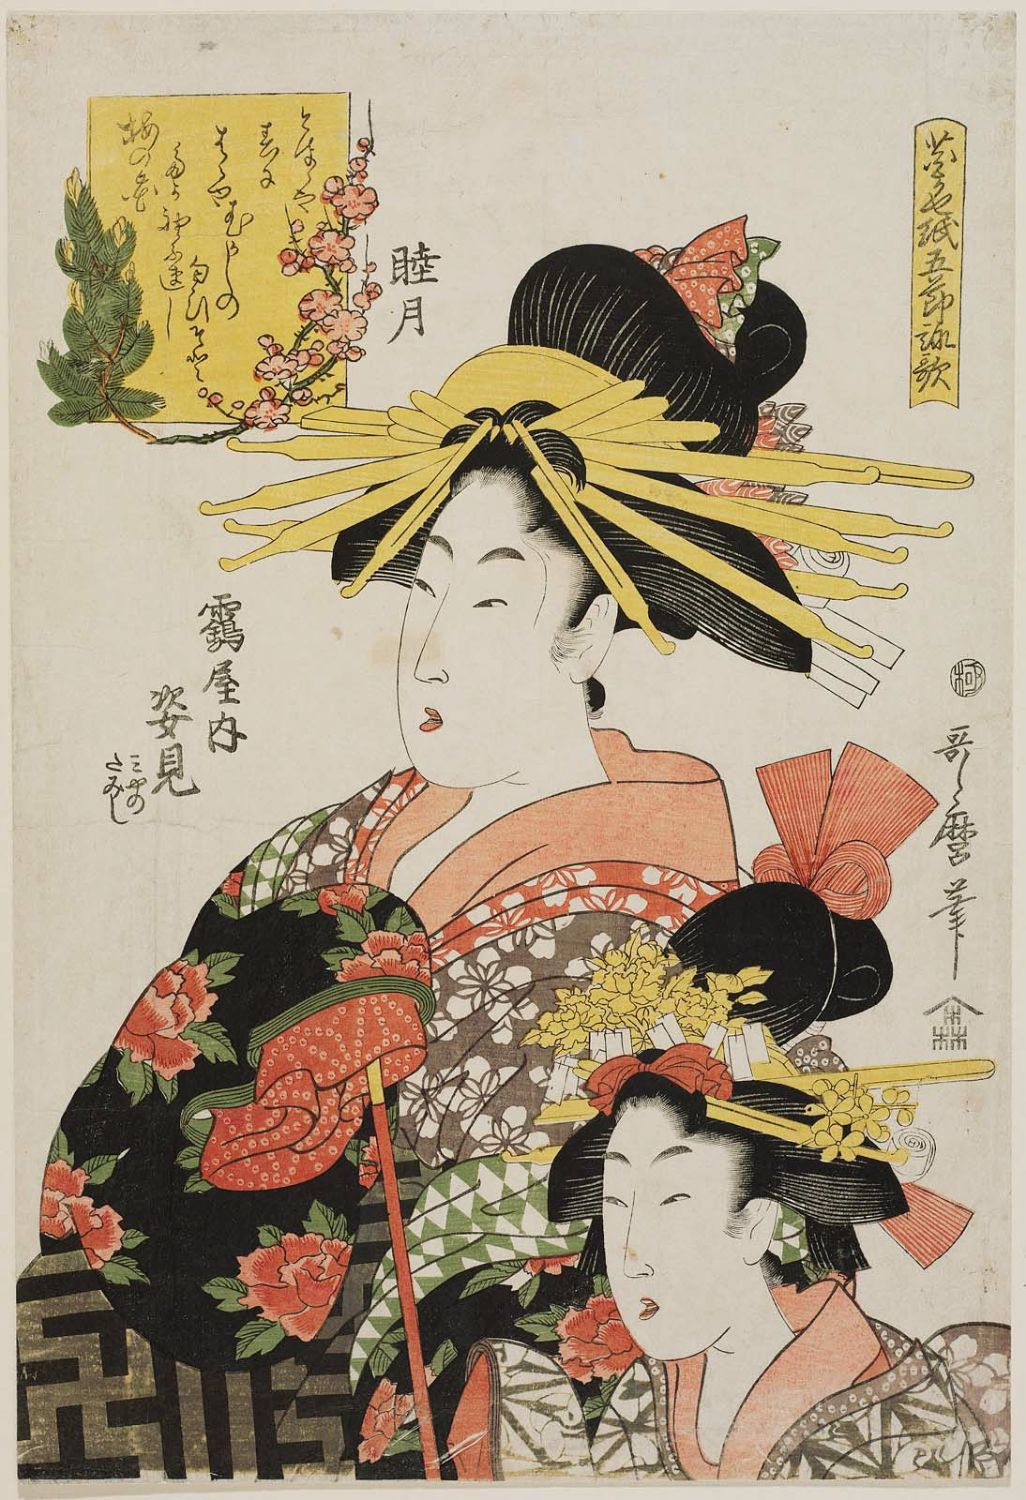 essays on kitagawa utamaro View essay - short essaydocx from arh 2000 at university of south florida brielle manuel marta slaughter arh 2000 short essay the work that i chose is titled lady with a fan which was created by.